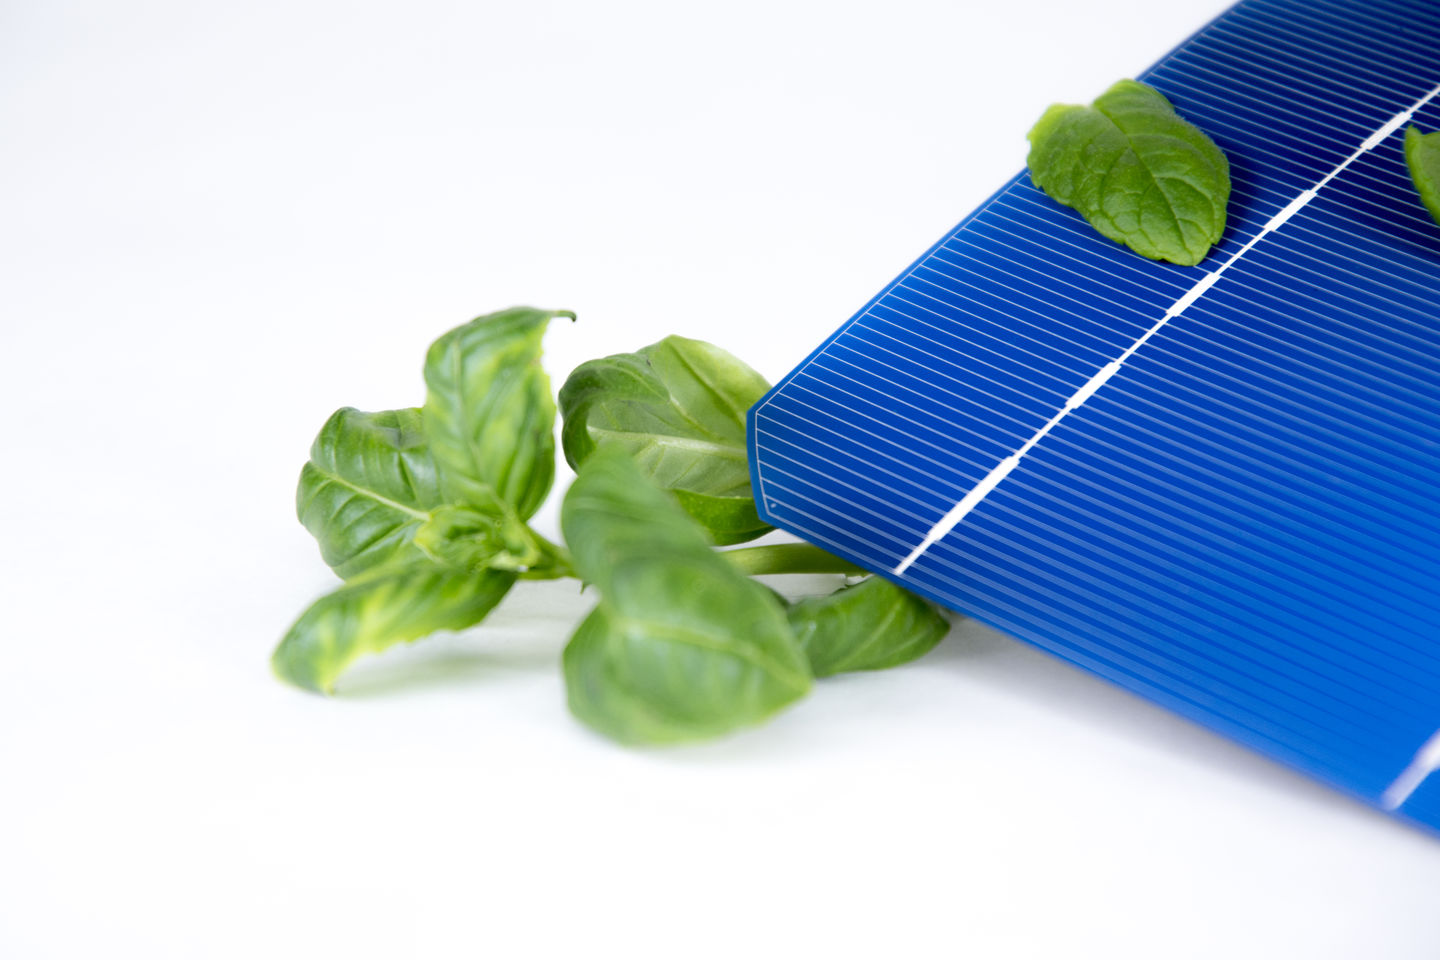 Solar cell and vegetation, researcher Janne Halme, photo Valeria Azovskaya, 2019